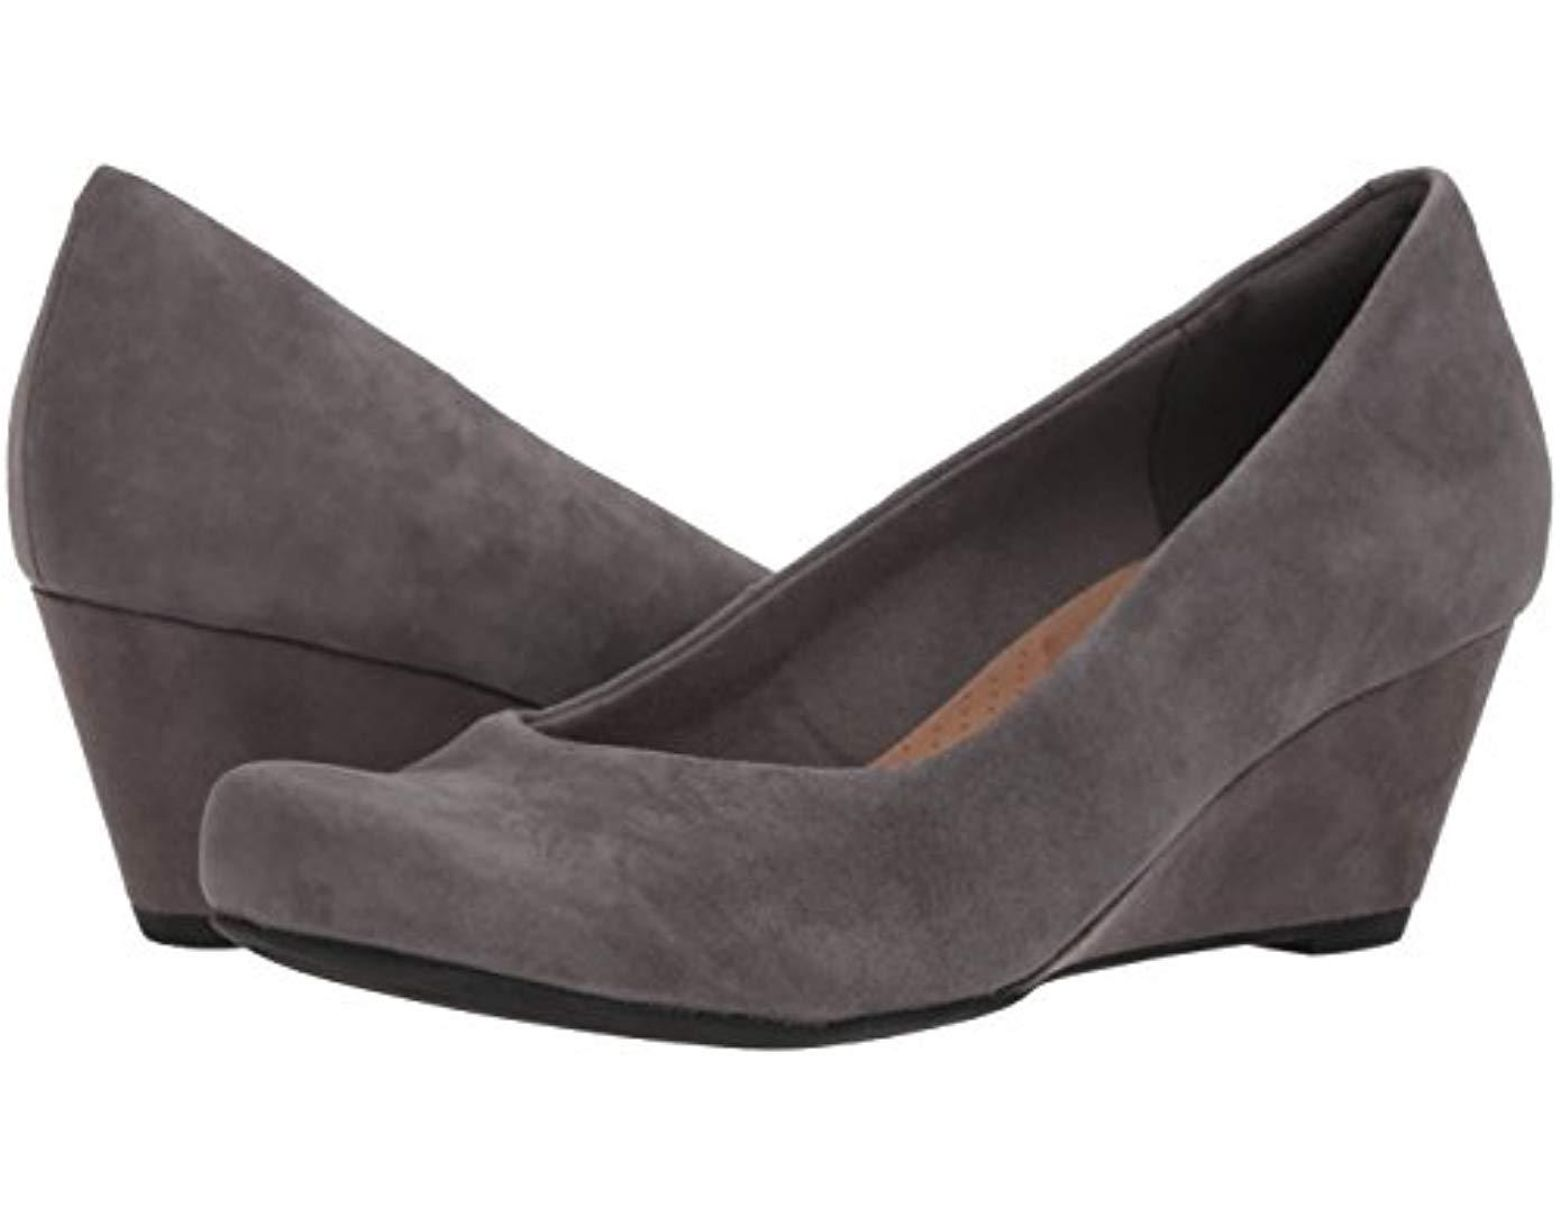 39ee904ae12ed Clarks Flores Tulip Wedge Pump in Gray - Save 50% - Lyst